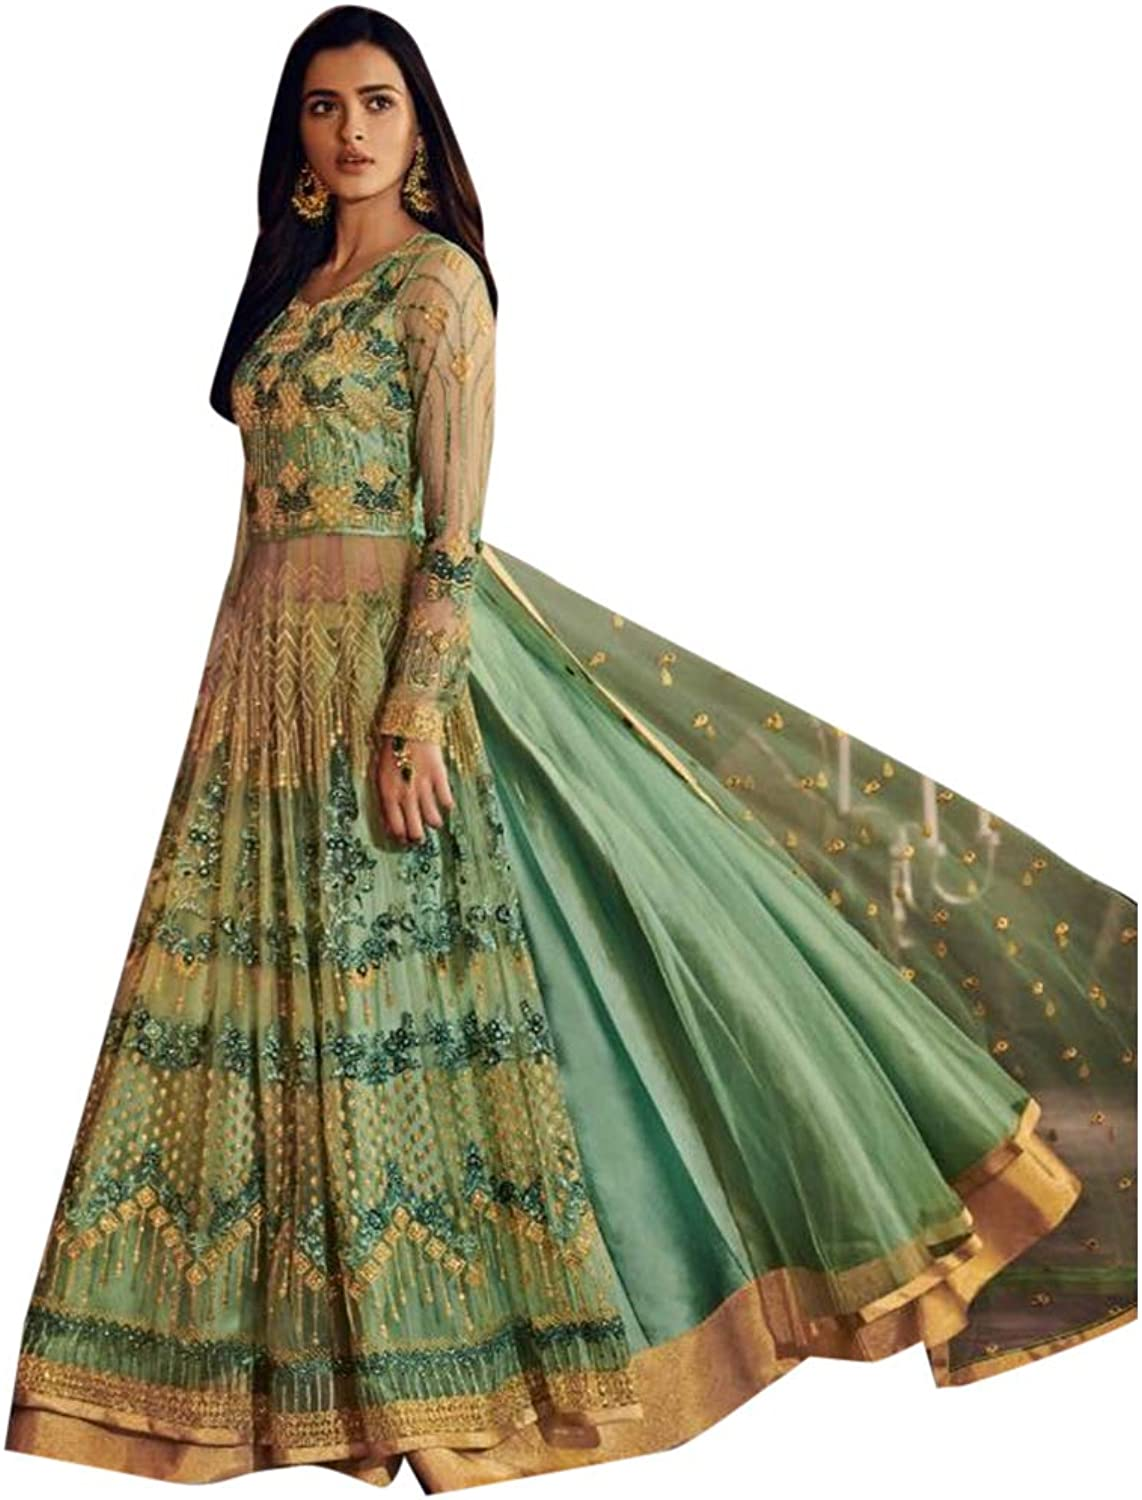 Indian Designer Collection Heavy Anarkali Salwar Kameez suit Long Dress Skirt Style Party Wear 7315